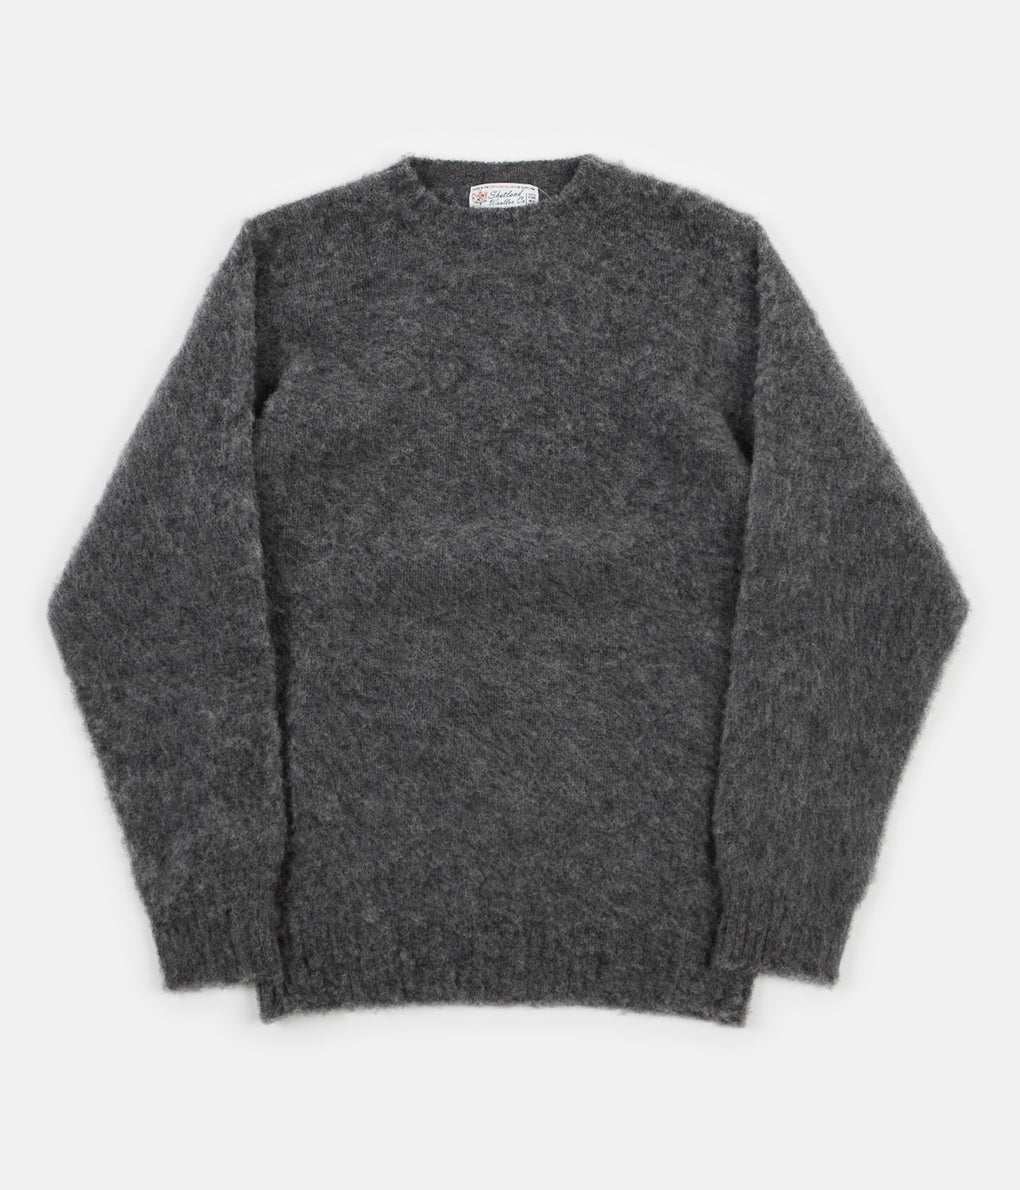 Shetland Woollen Co. Heavy Brushed Shaggy Crewneck - Grey